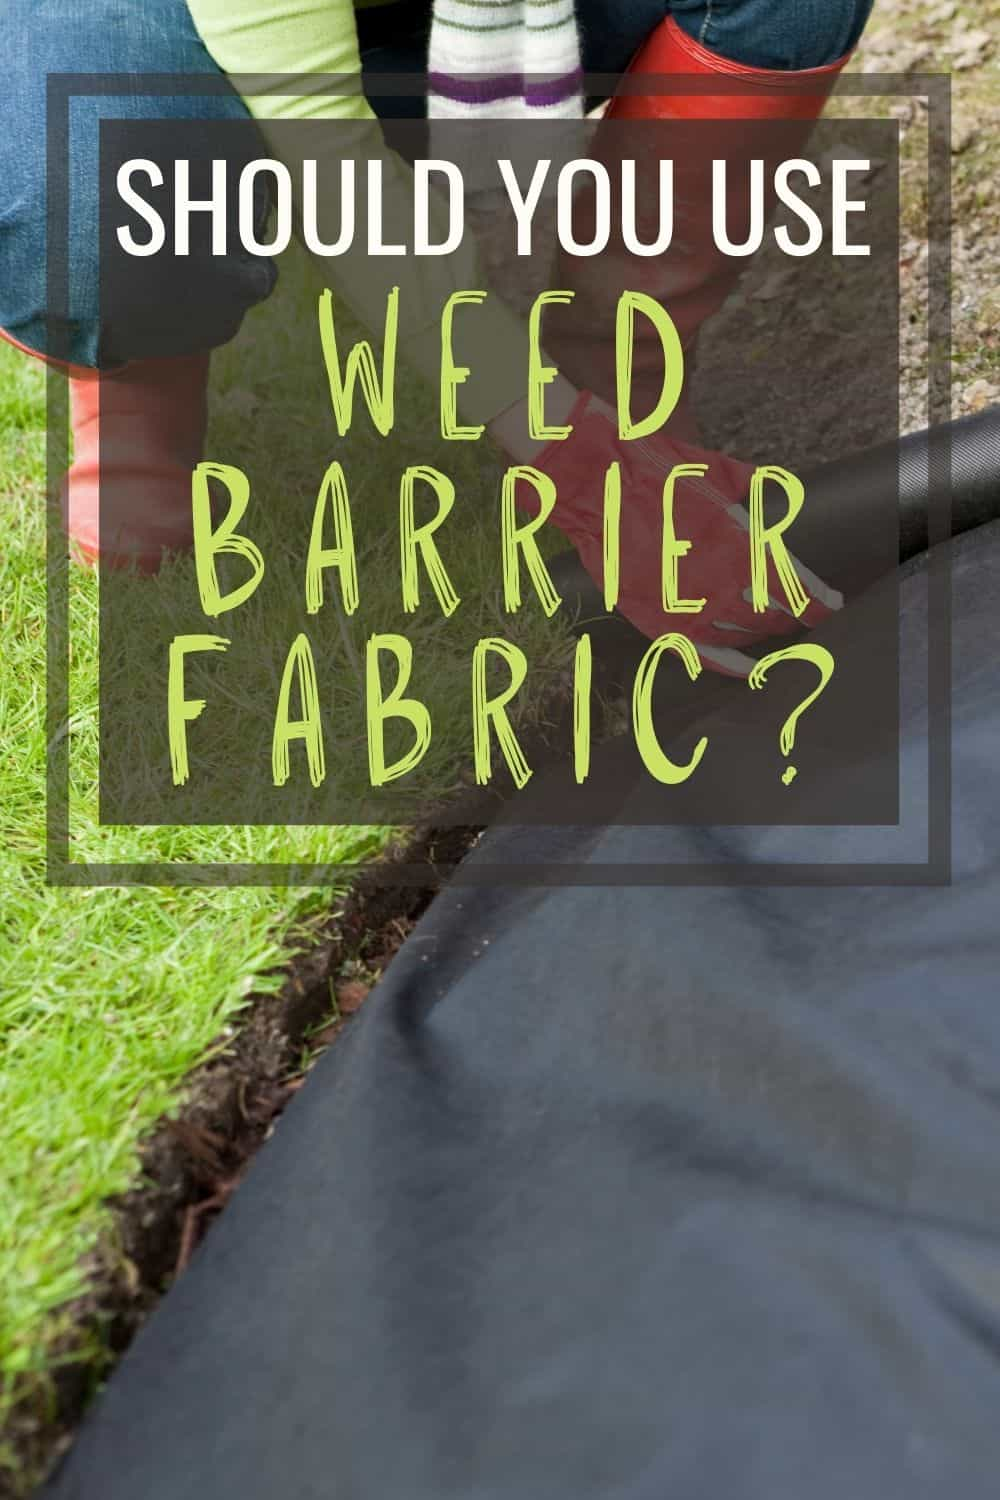 Should you use weed barrier fabric?